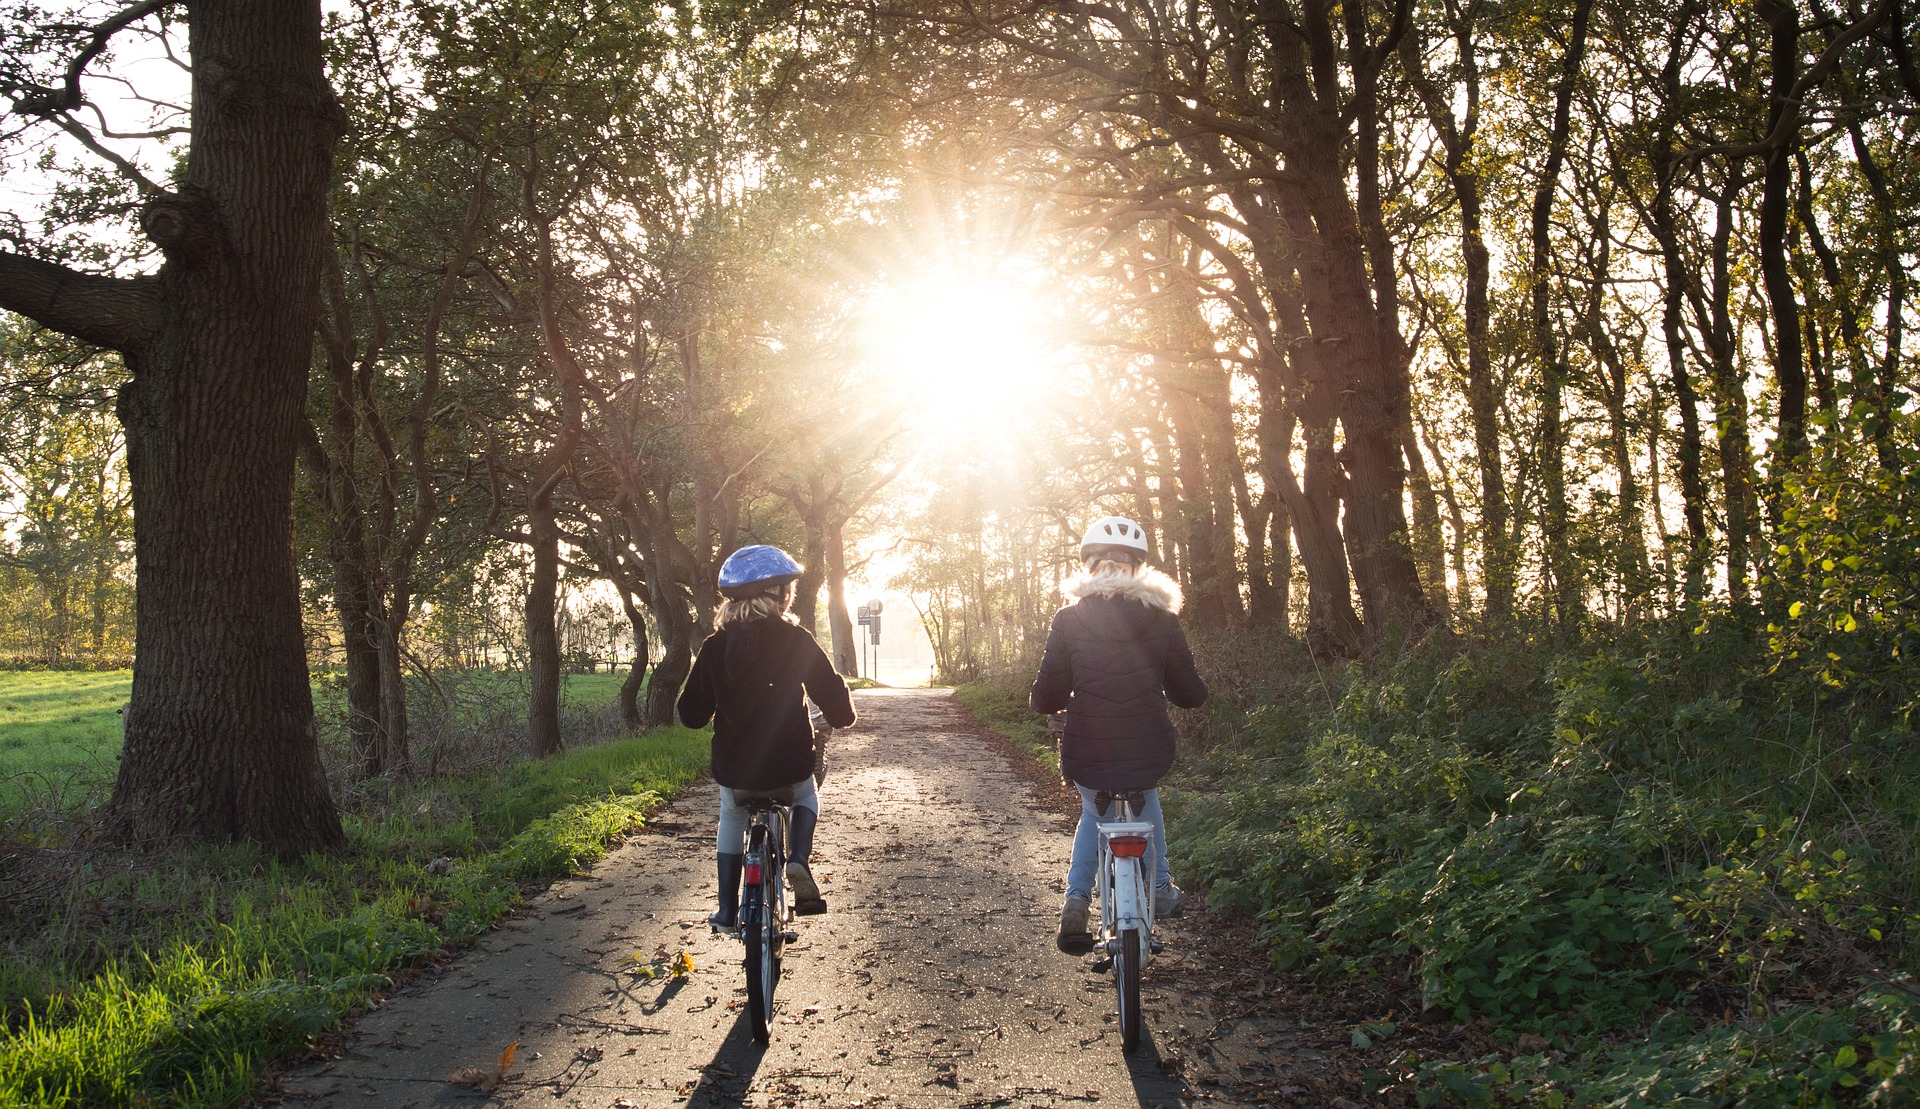 Two children riding bicyles on a path in the woods